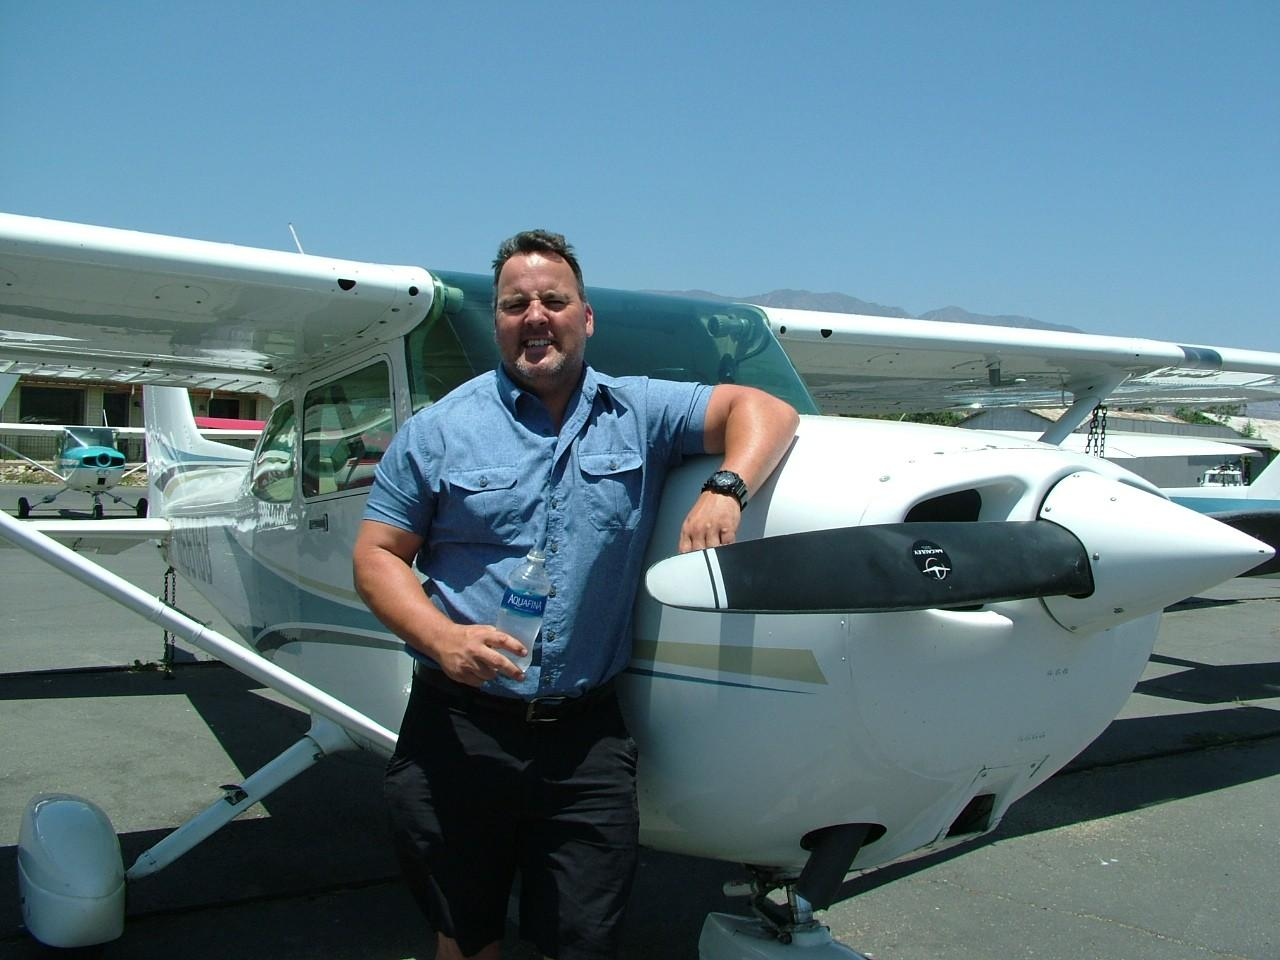 Instrument Rating - Warren Tittlemier